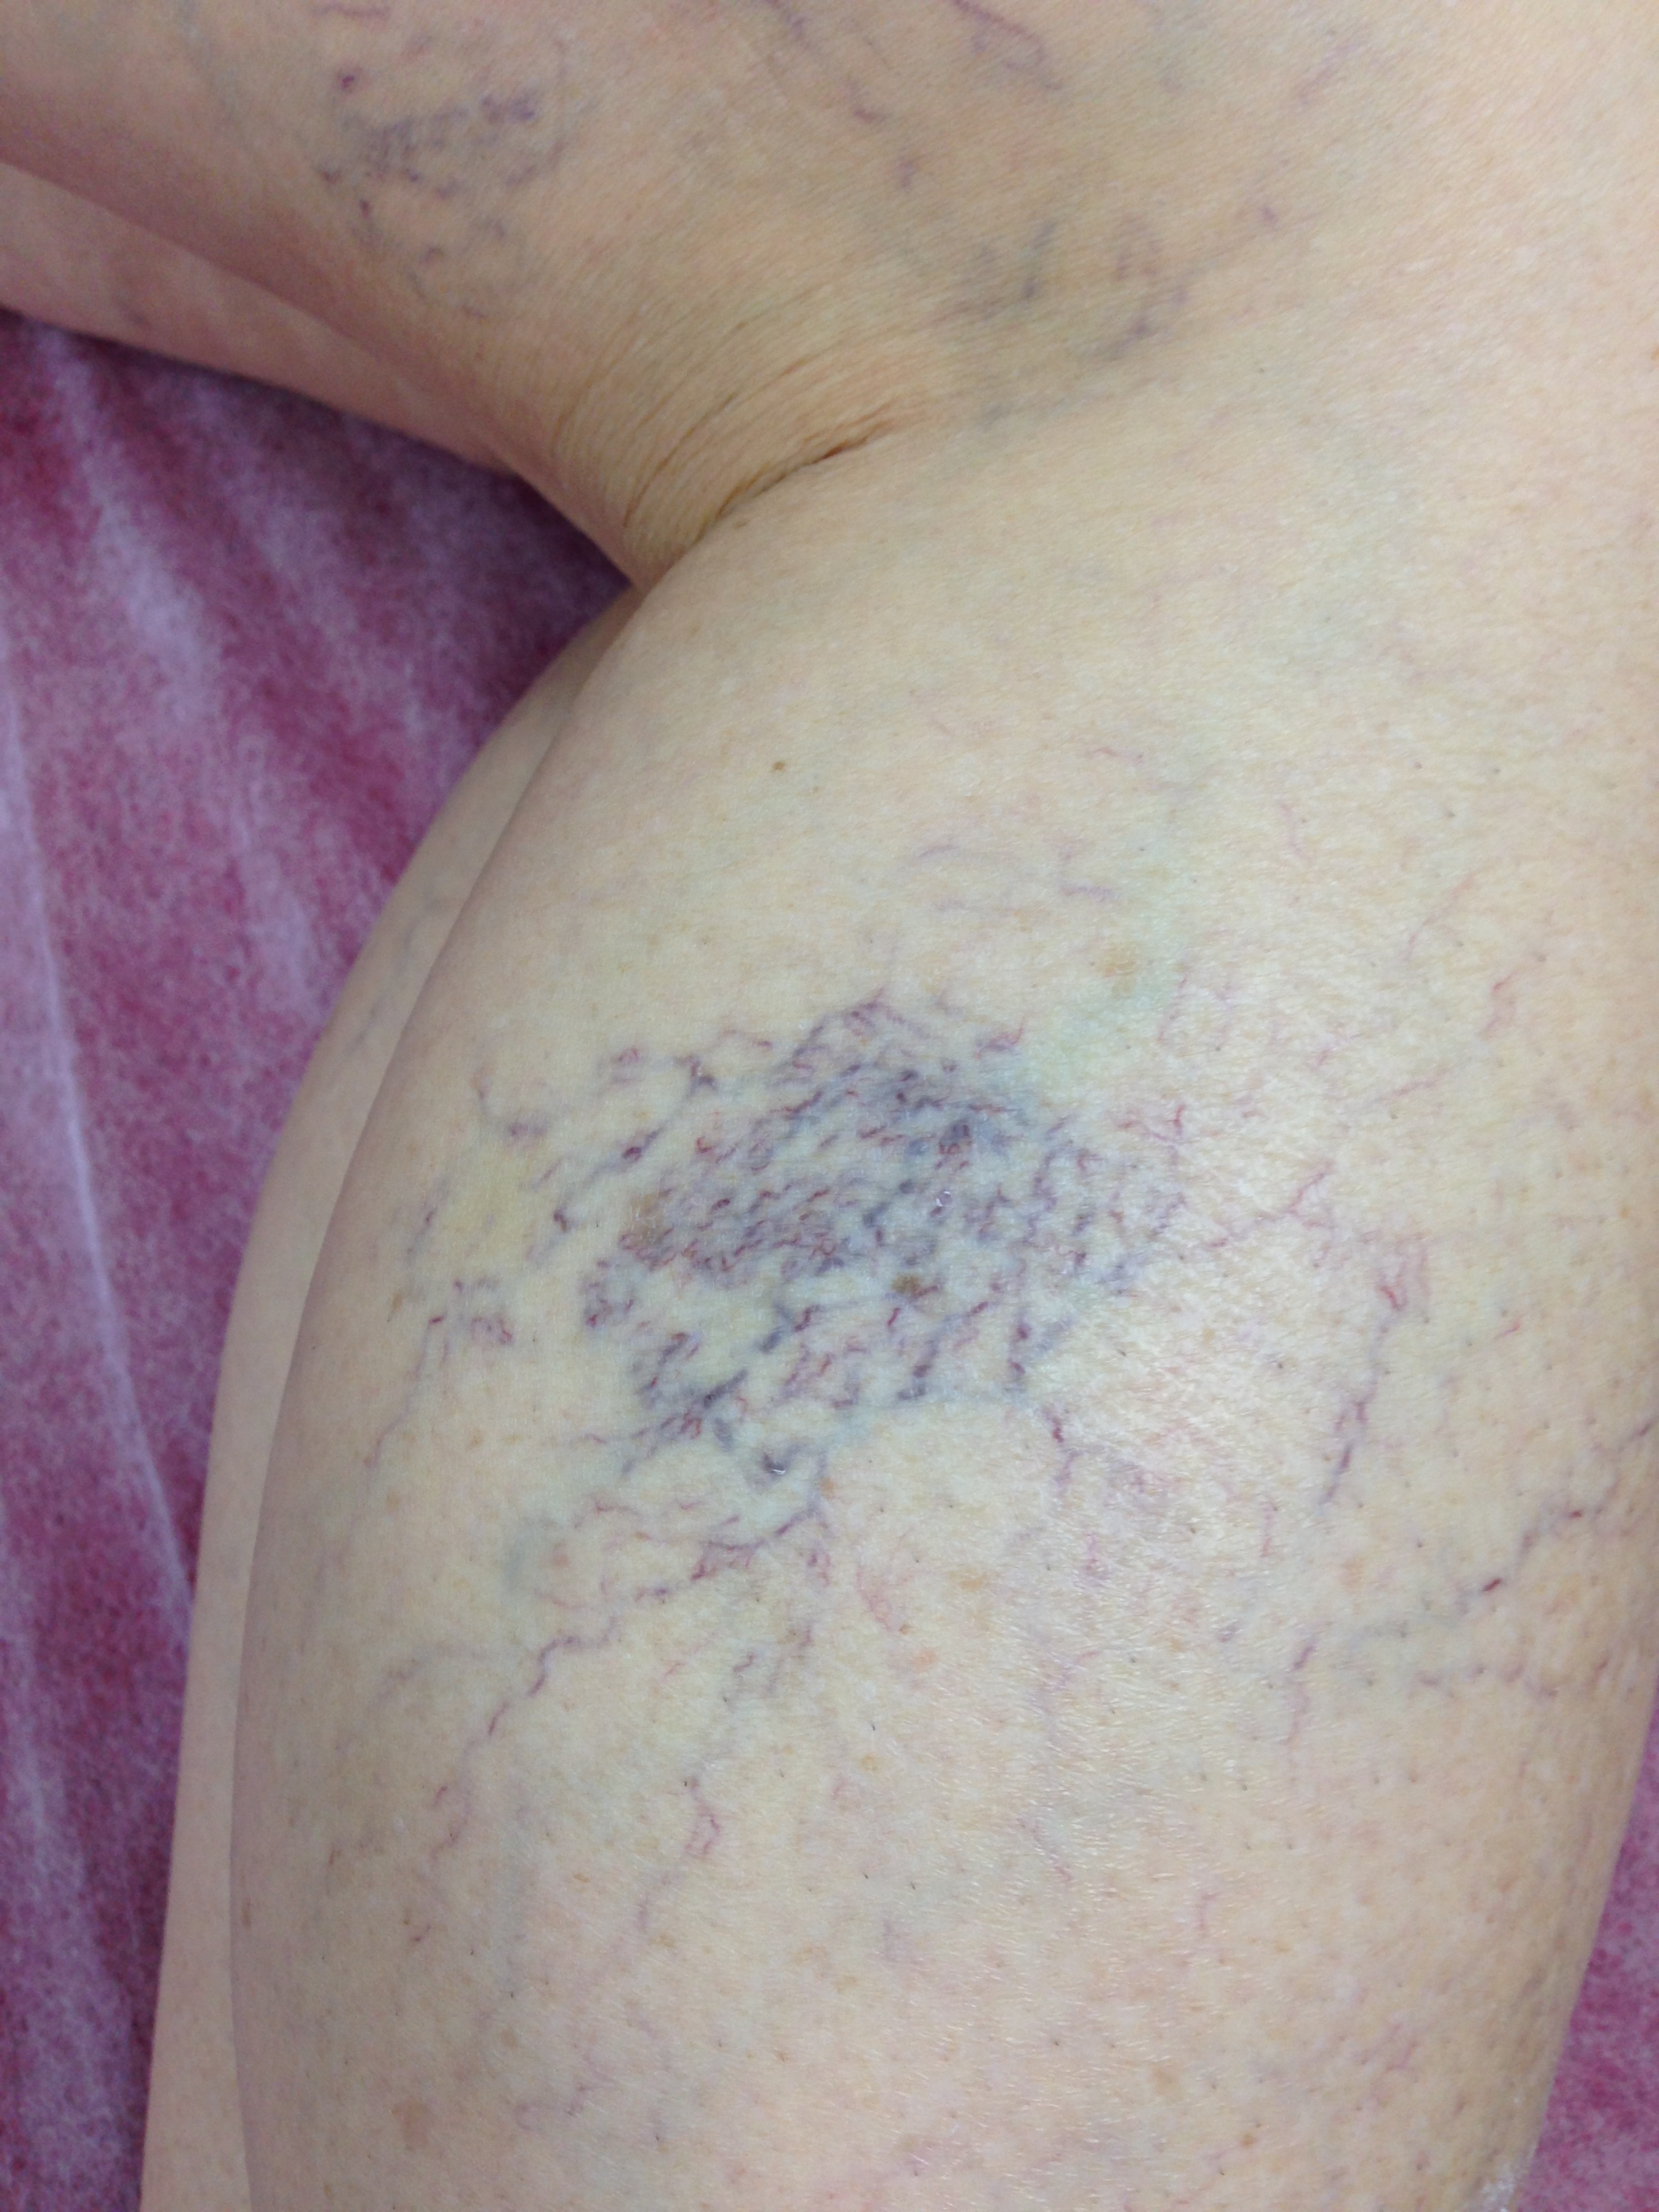 Patient presented with extensive Telangiectasia. Female, 50 years.